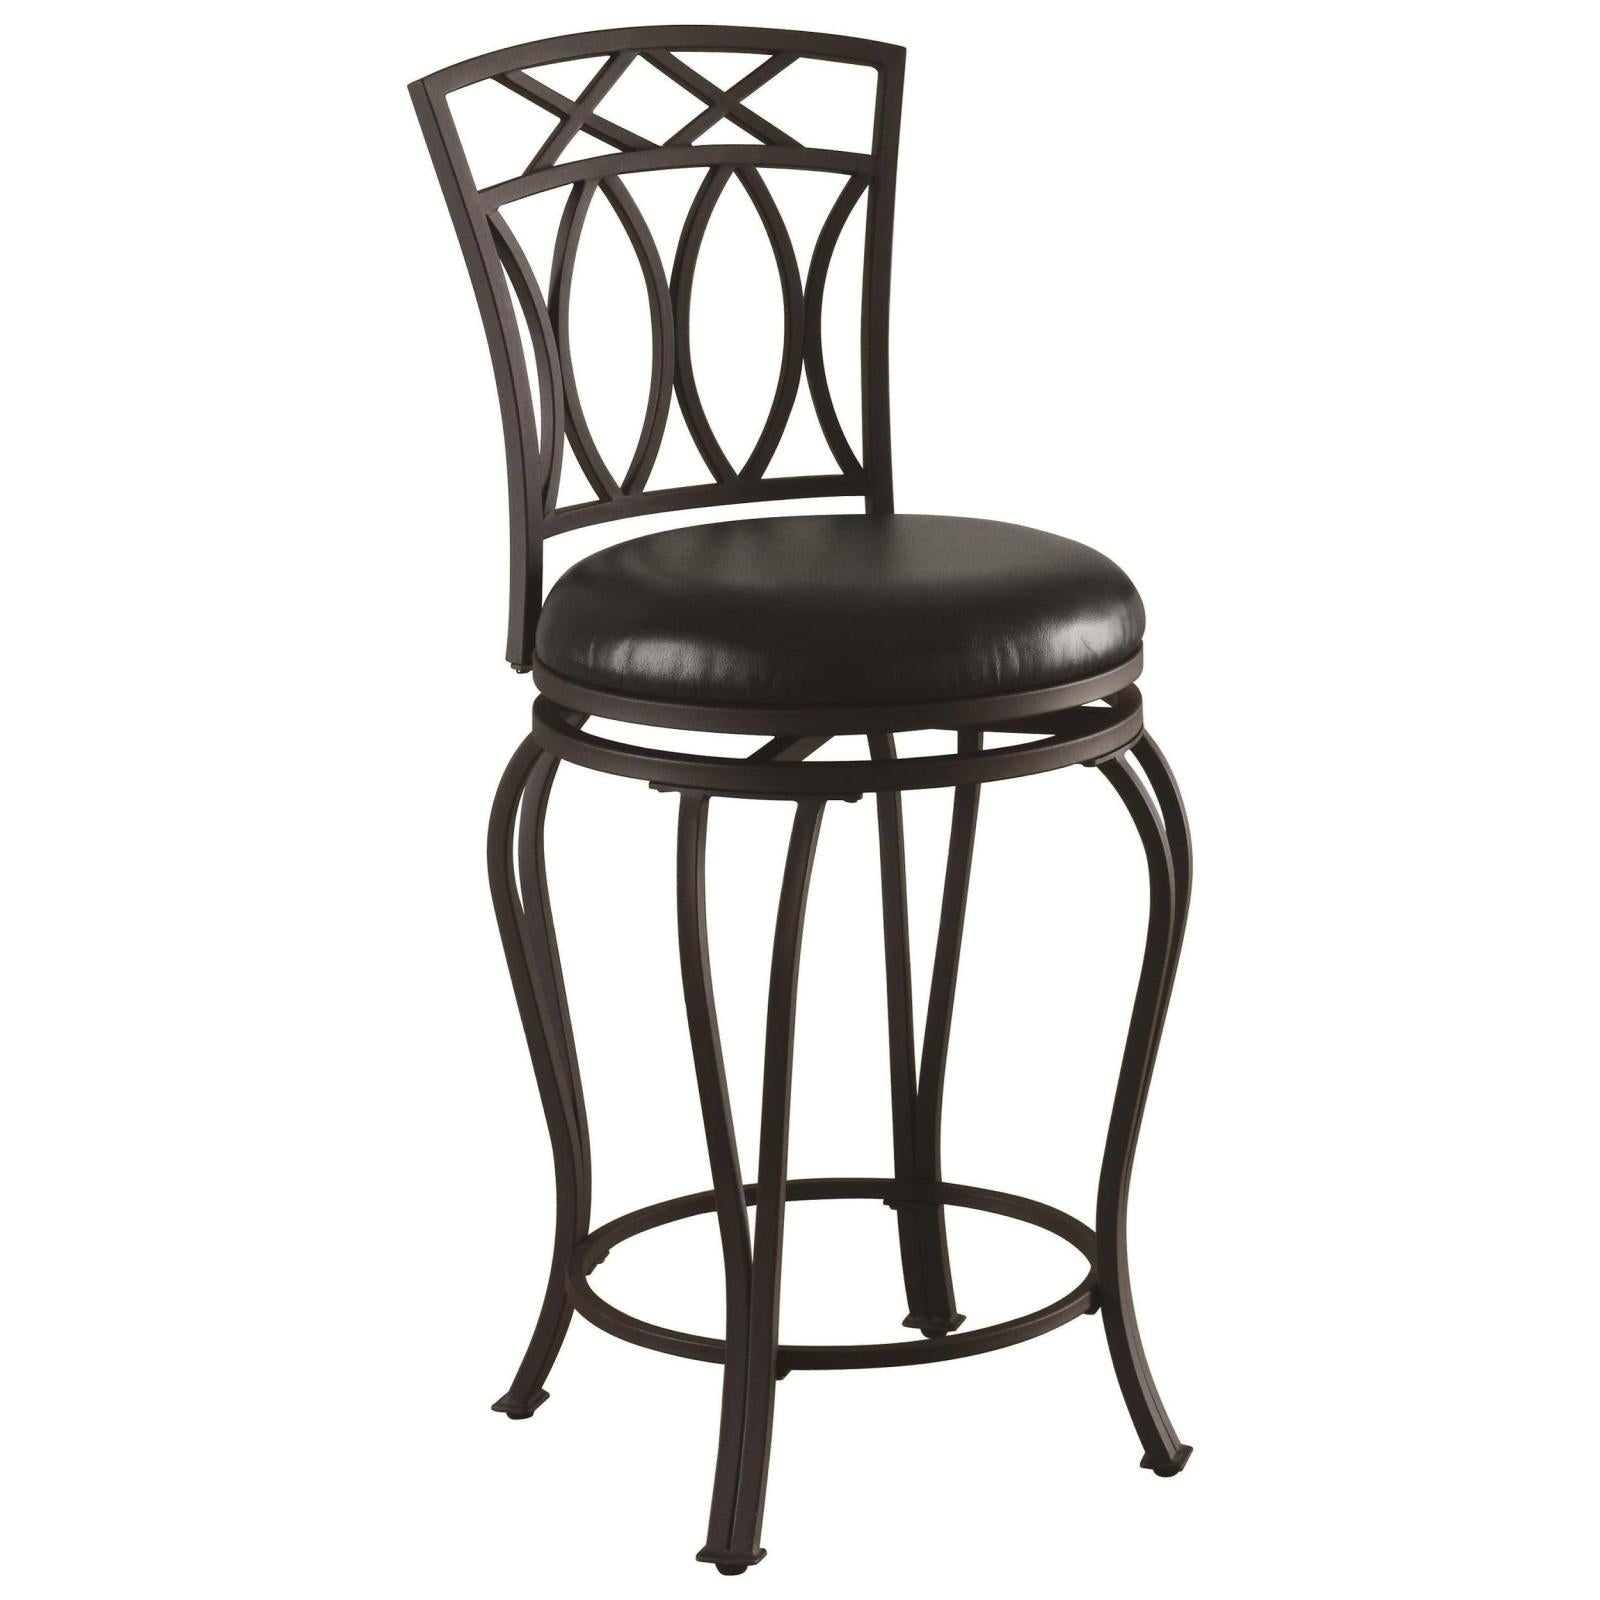 Peachy Swivel Black Bar Stool Gmtry Best Dining Table And Chair Ideas Images Gmtryco